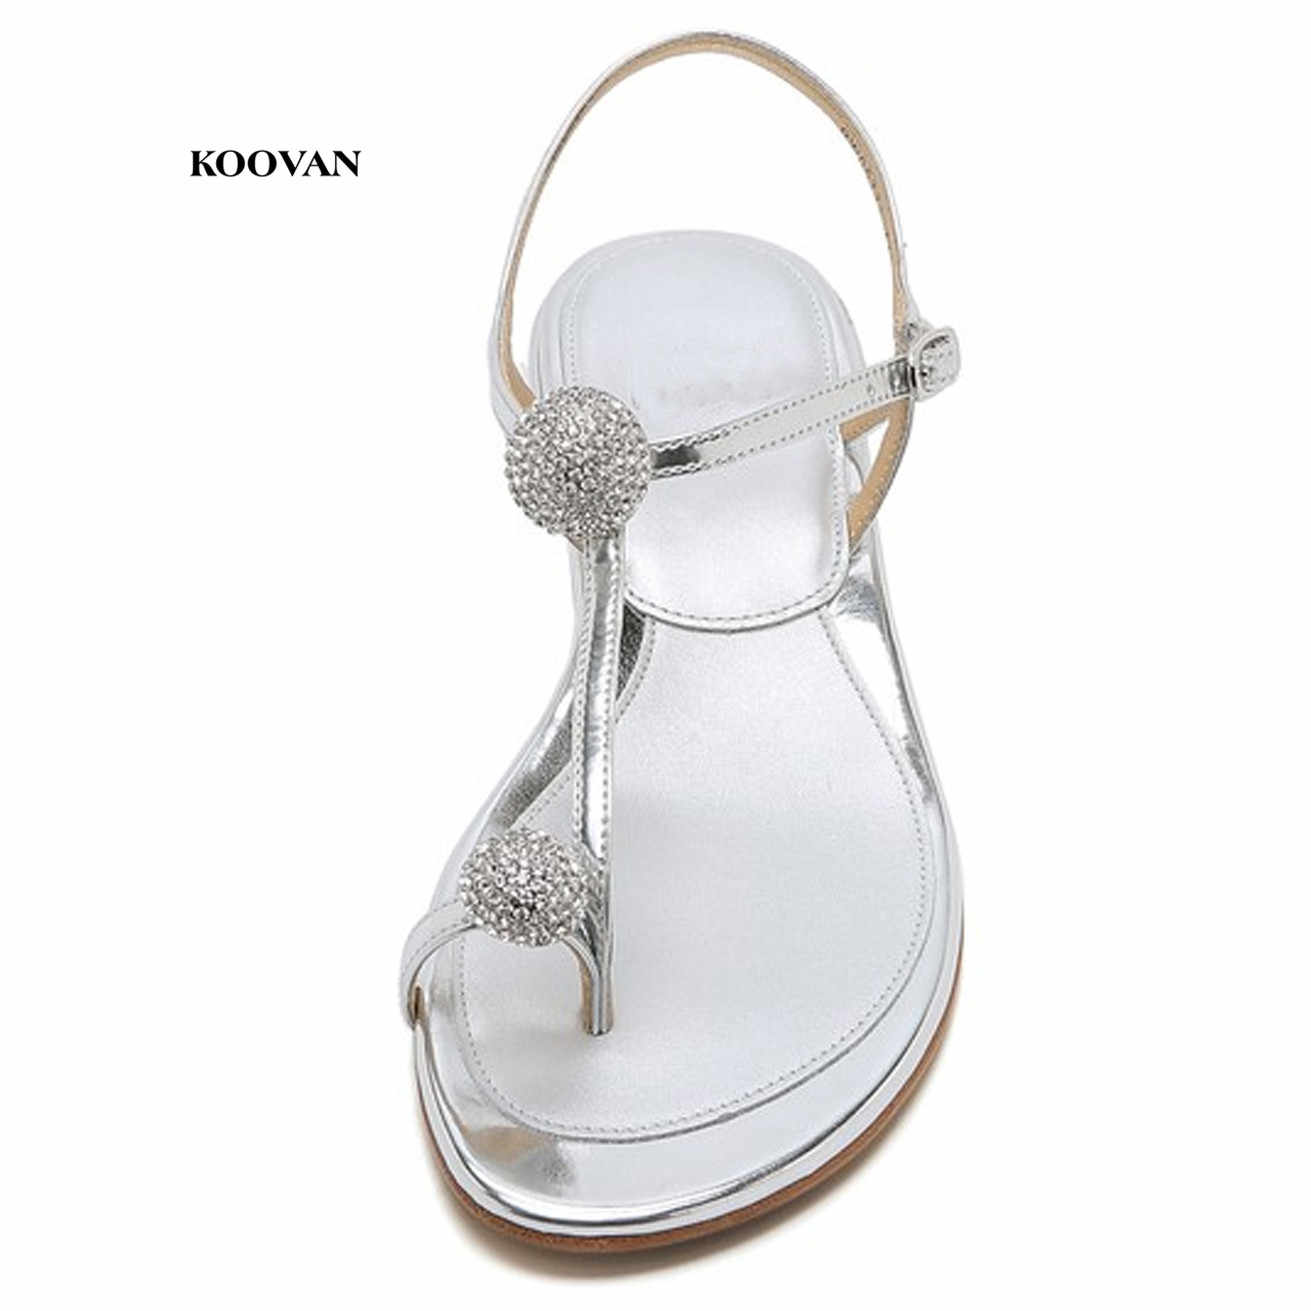 d3a4cce26bac5 Koovan Women s Sandals 2018 New Summer Rhinestone Ball Toe Shoes With  Low-heeled Sandals Flat